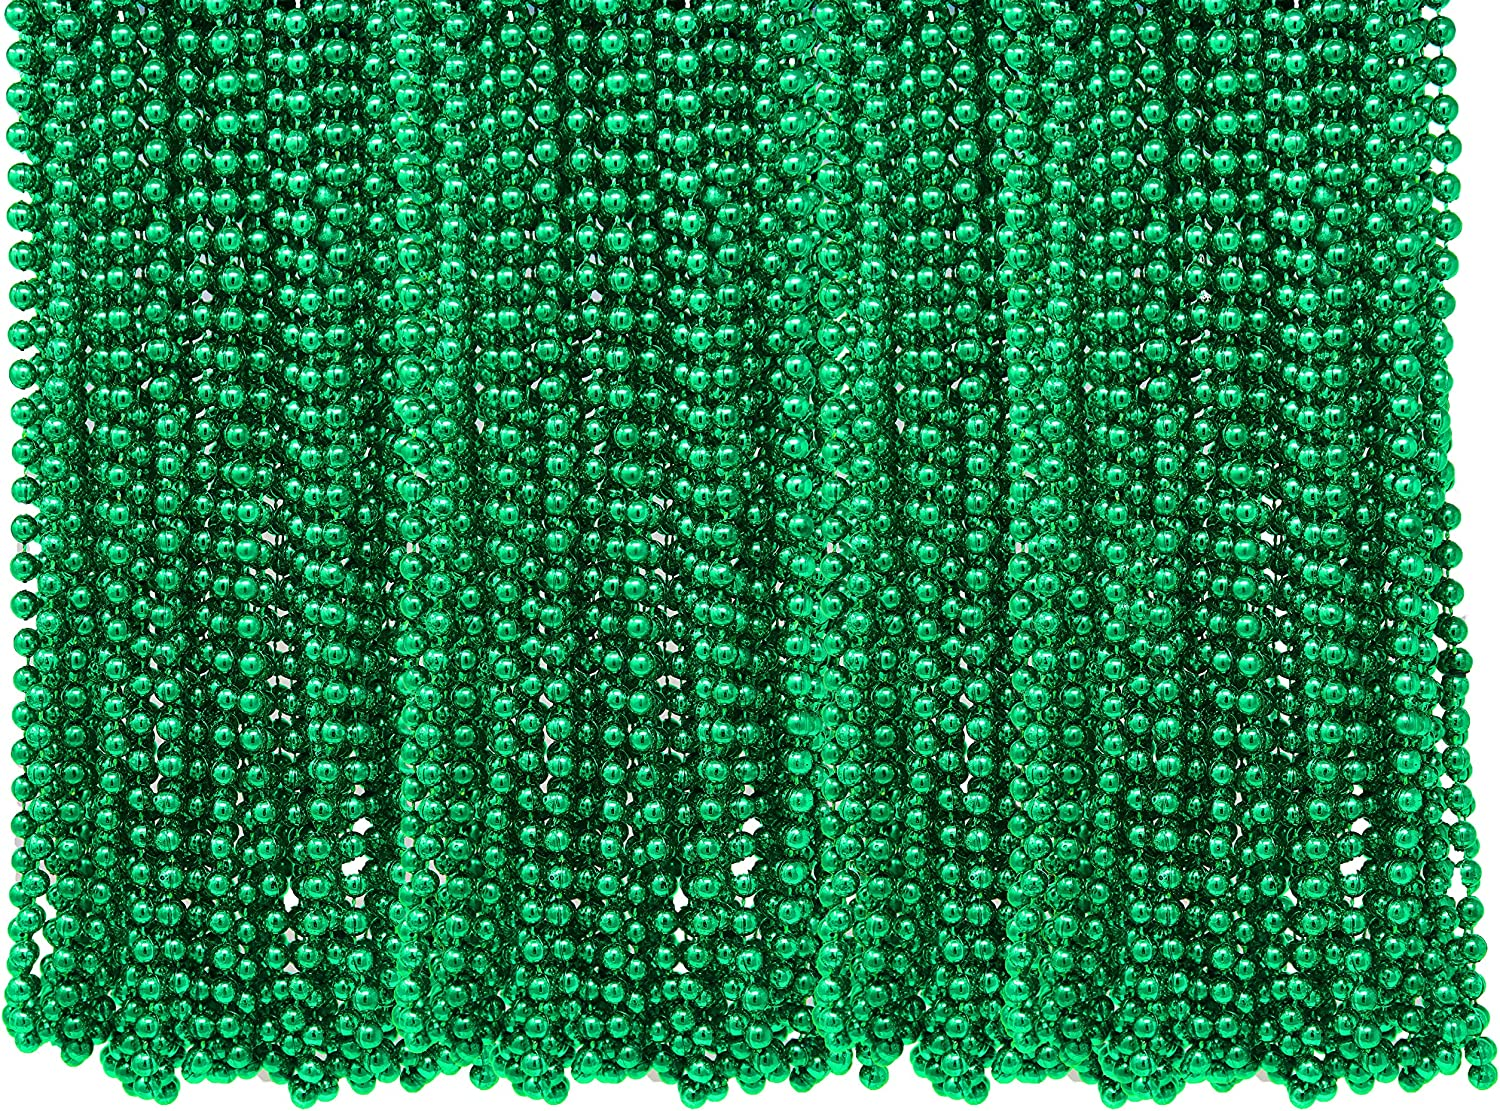 4e S Novelty St Patricks Day Beads Necklace Bulk 72 Pack Green Beads St Patrick S Day Gifts For Kids 33 7mm Kids Party Favor Supplies Costume Accessories Toys Games Amazon Com